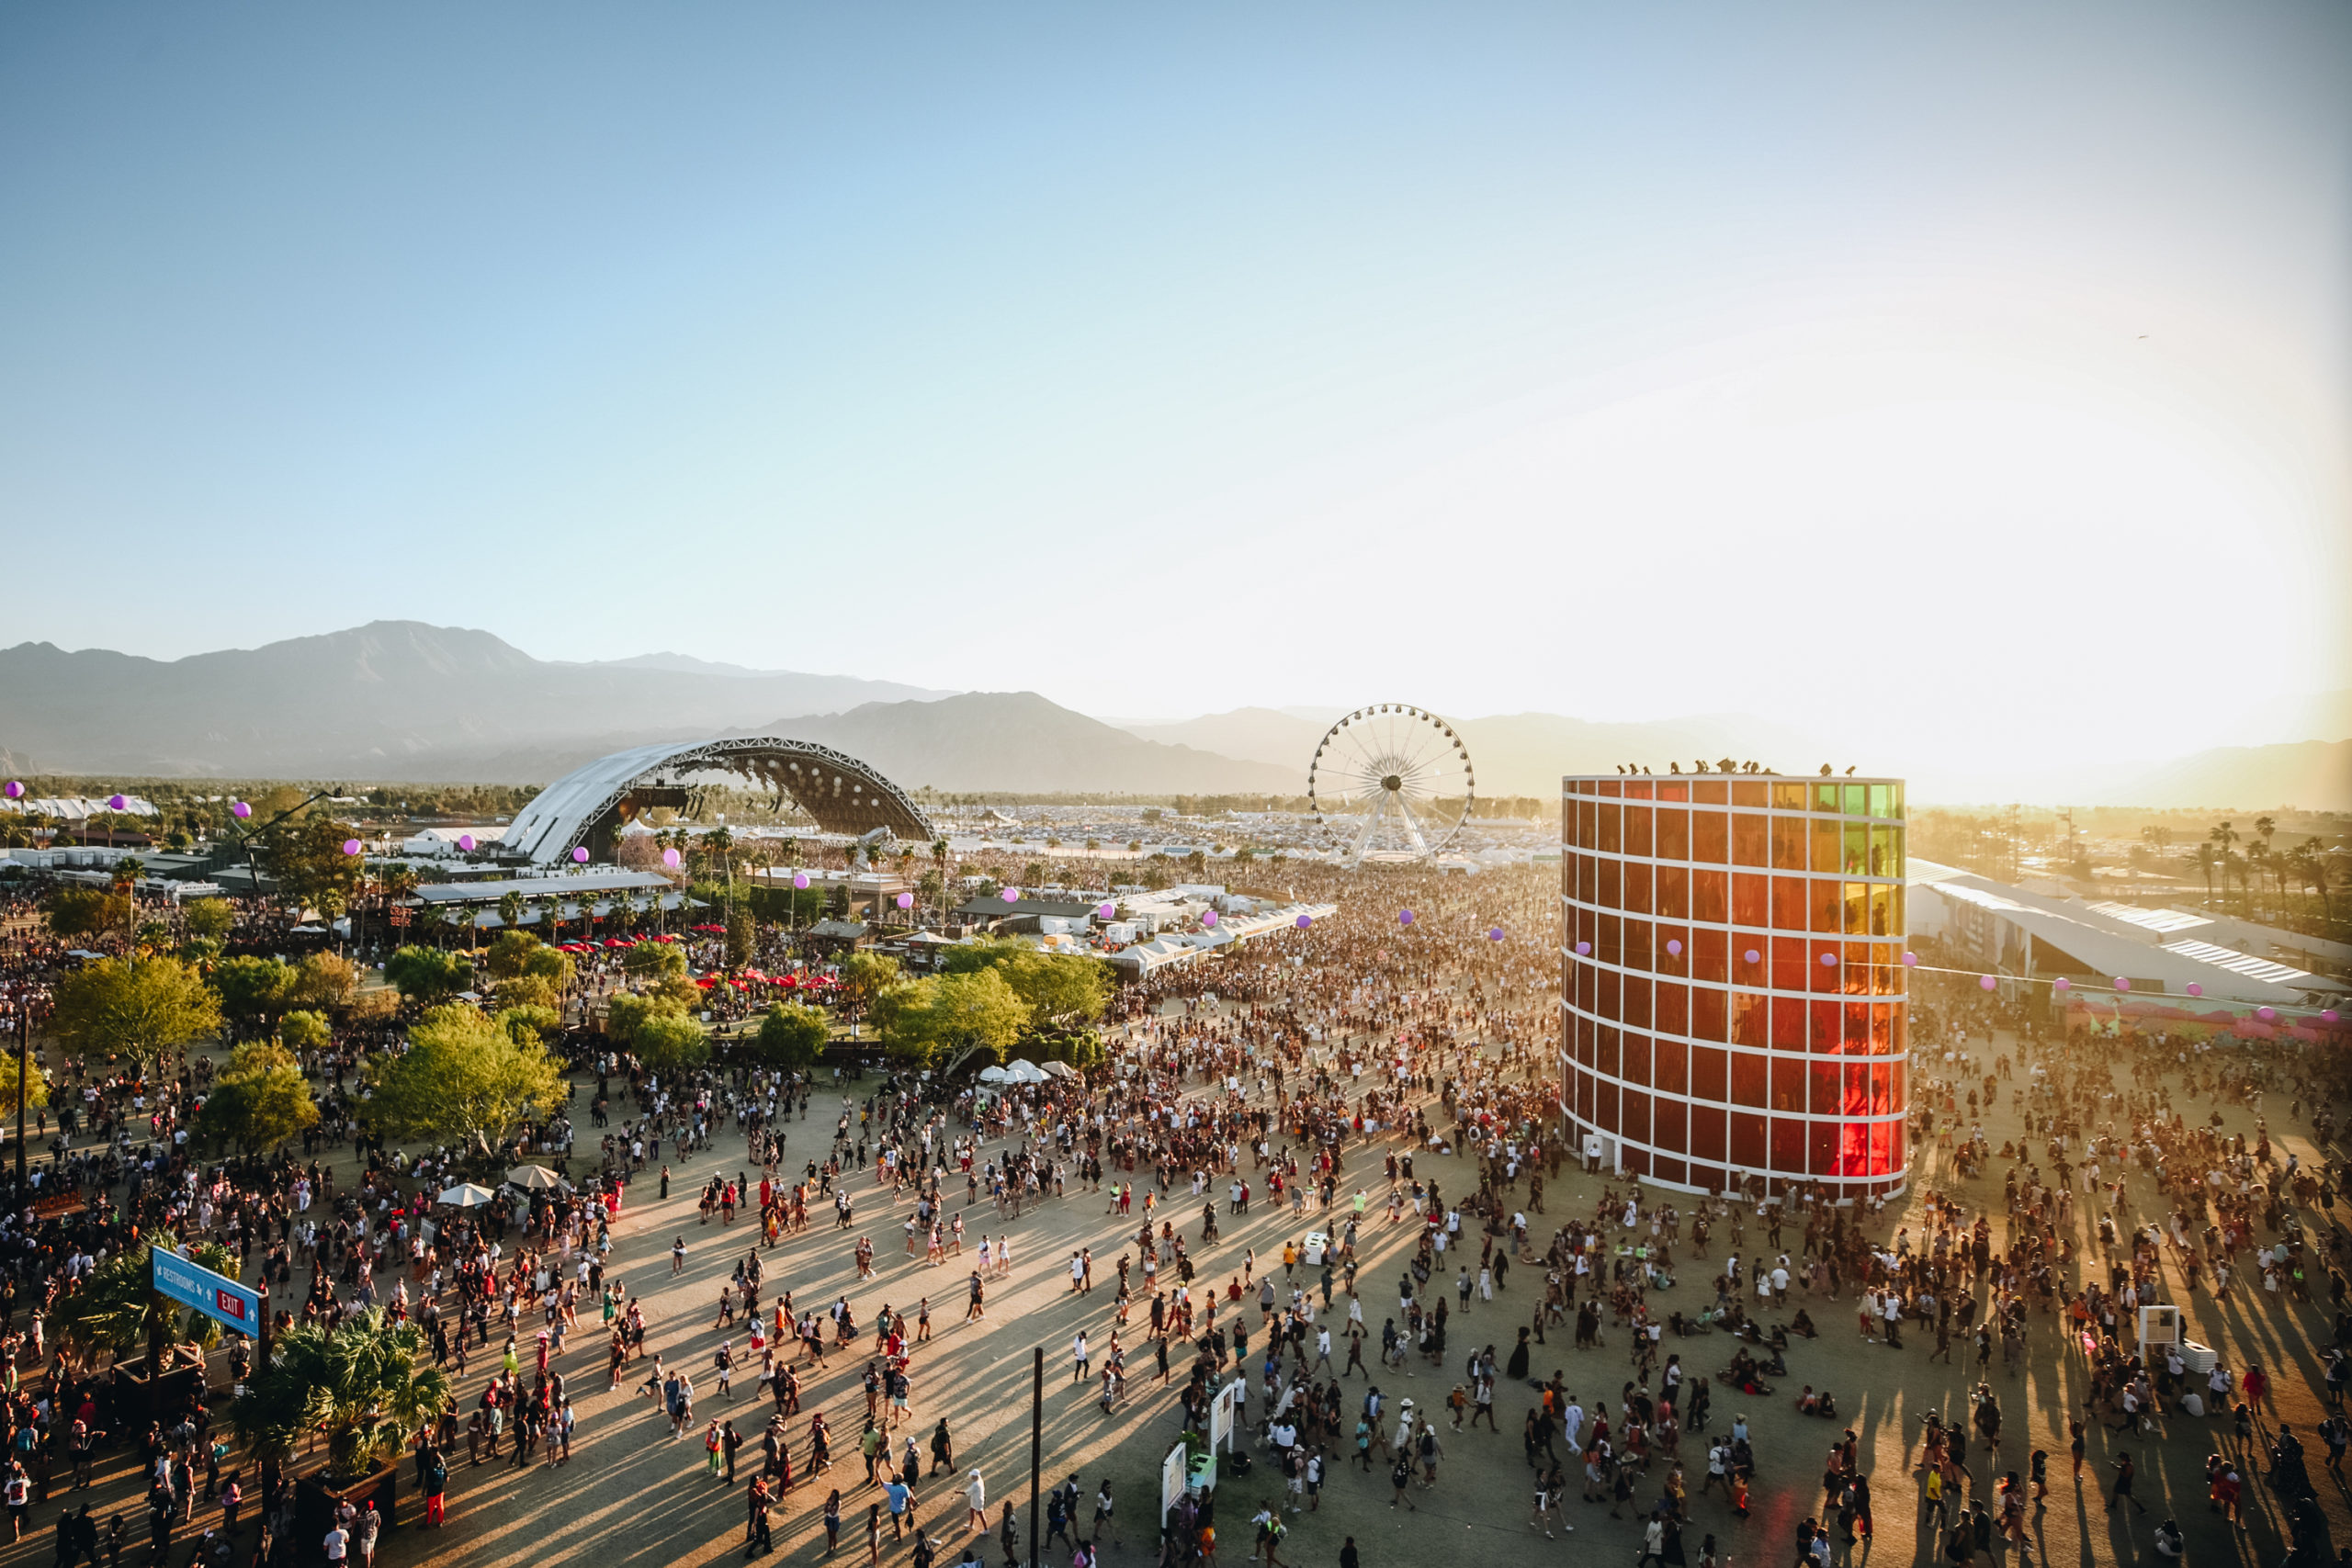 Coachella and Stagecoach festivals eyeing move to October due to coronavirus